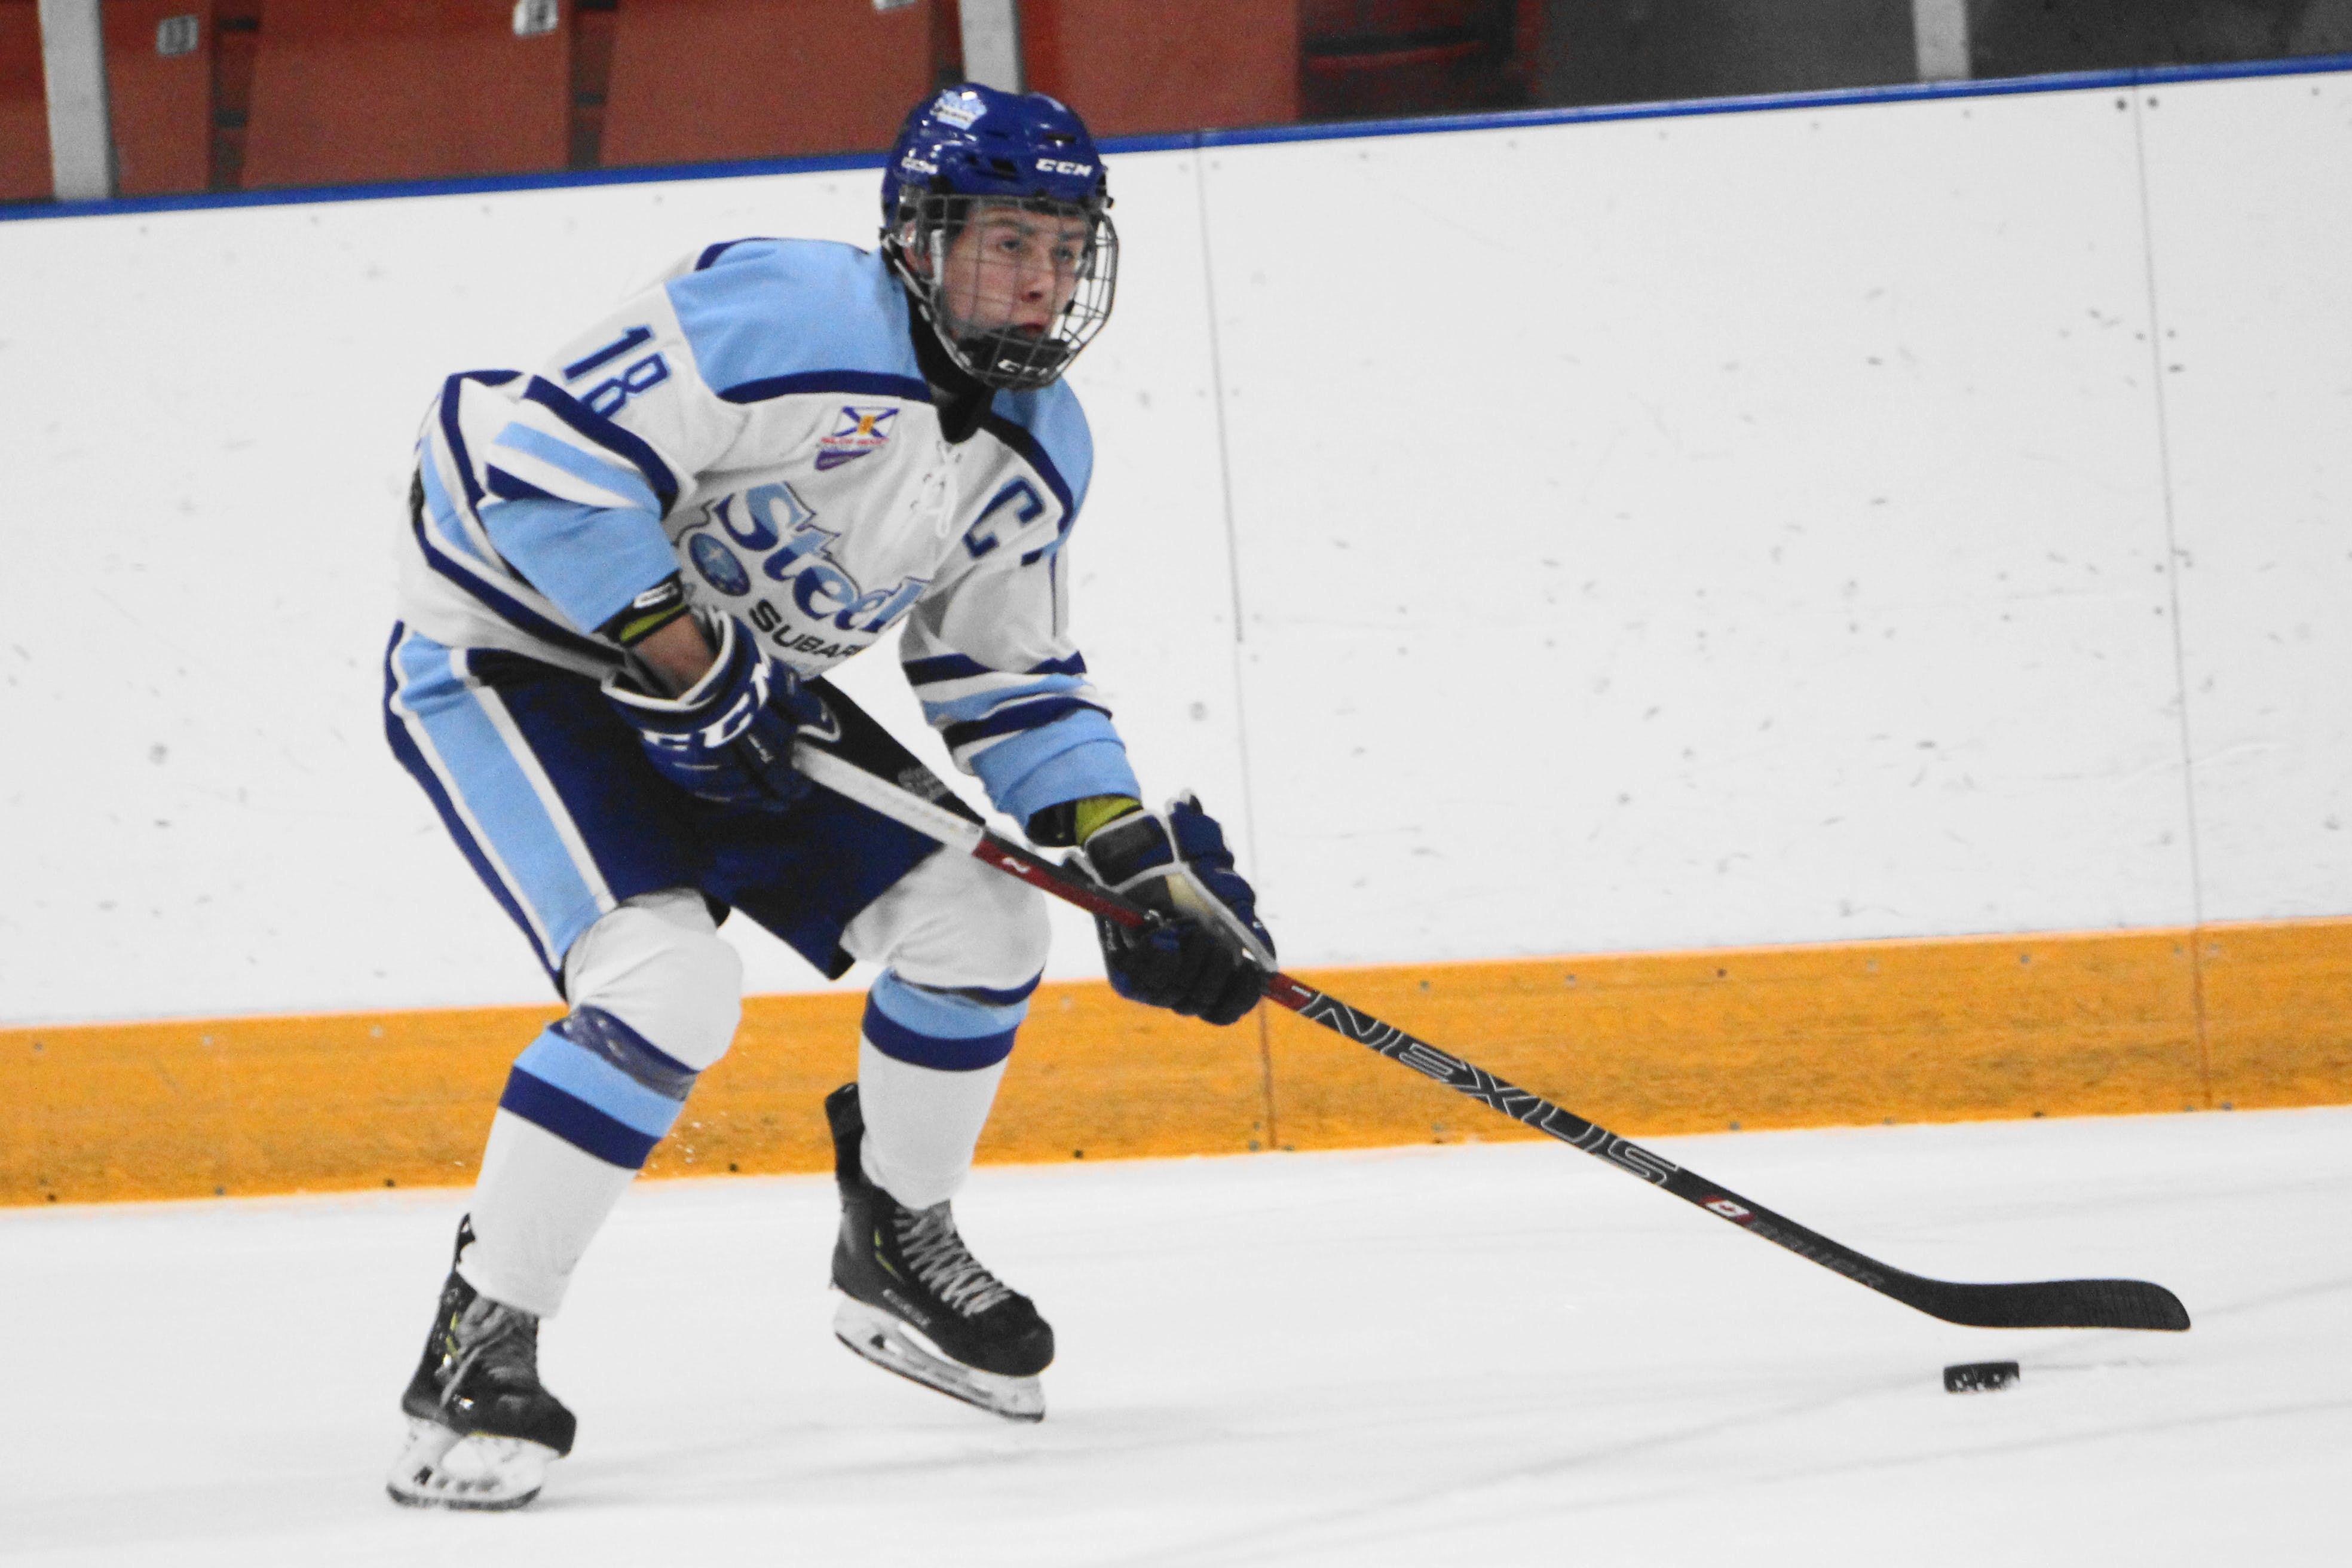 Captain   Kian Bell and his Steele Subaru  teammates are off to an incredible start to the Nova Scotia Under 18 Hockey League season. Bell shares the league lead in goals and points and Steele is atop the standings. Rob Bell